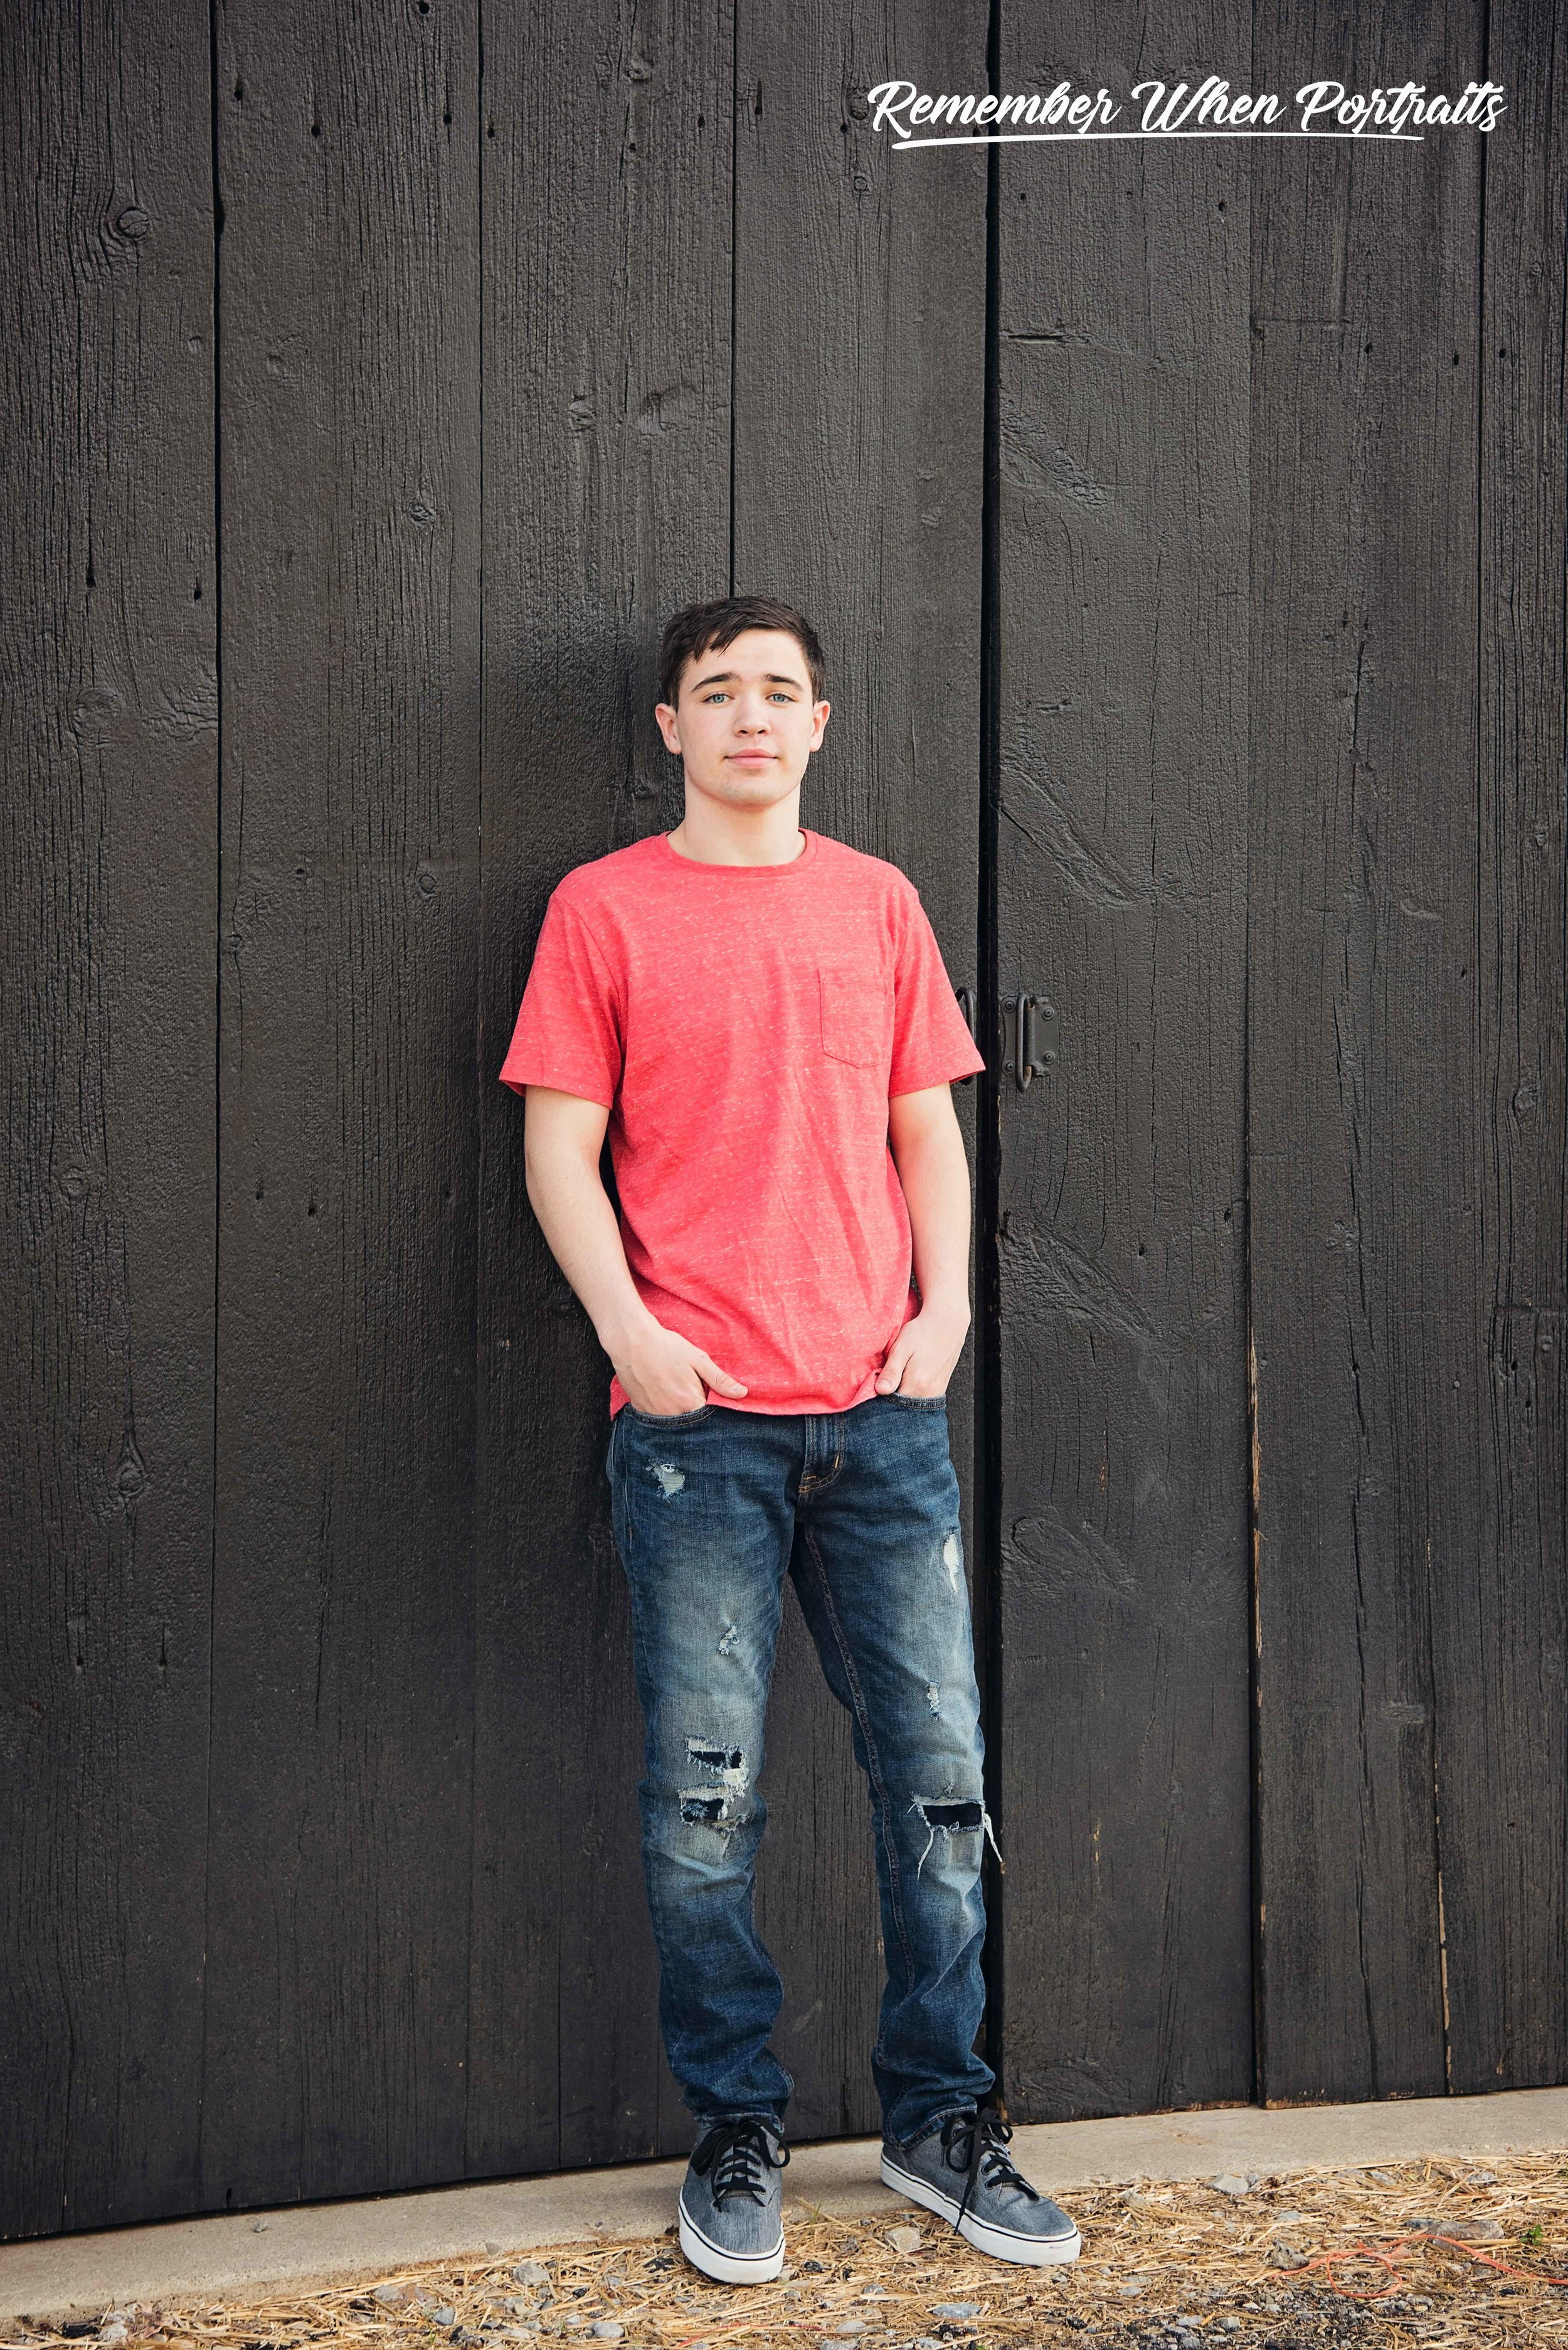 Little Miami High School Class of 2020 Cody Anderson Senior Portraits Cincinnati Ohio Remember When Portraits